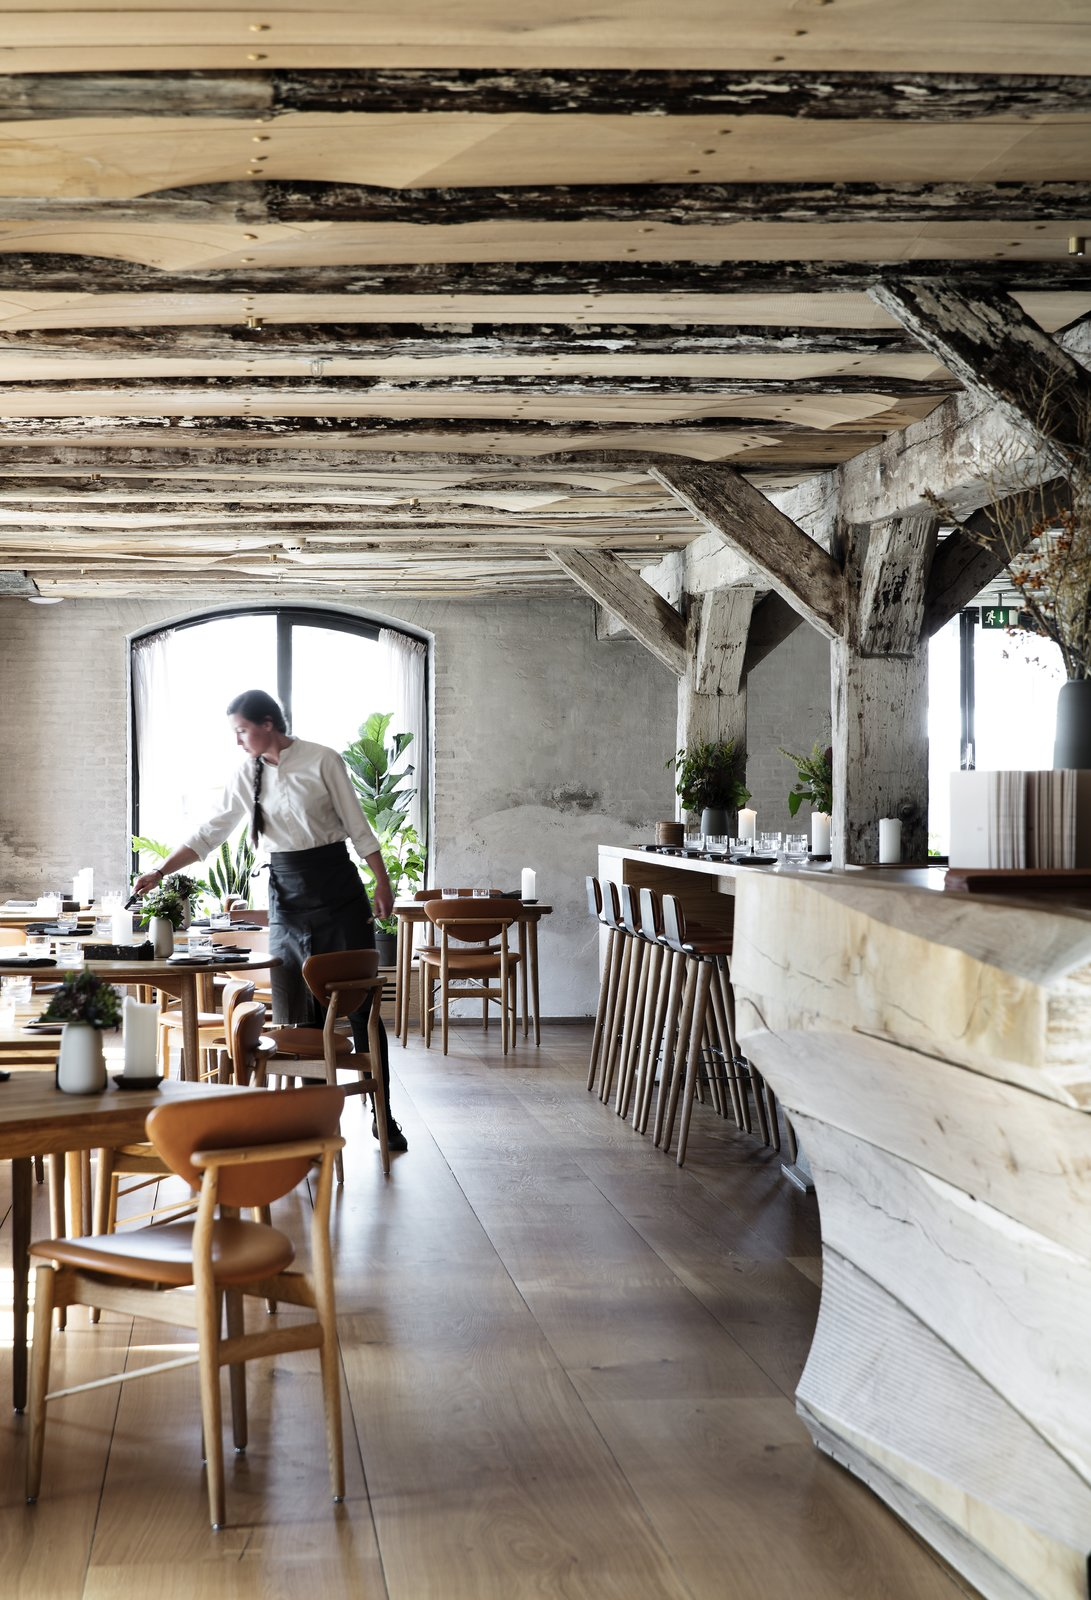 Photo 1 of 10 in Snøhetta Designs the Interiors of Barr, the Noma Group's New  Copenhagen Restaurant